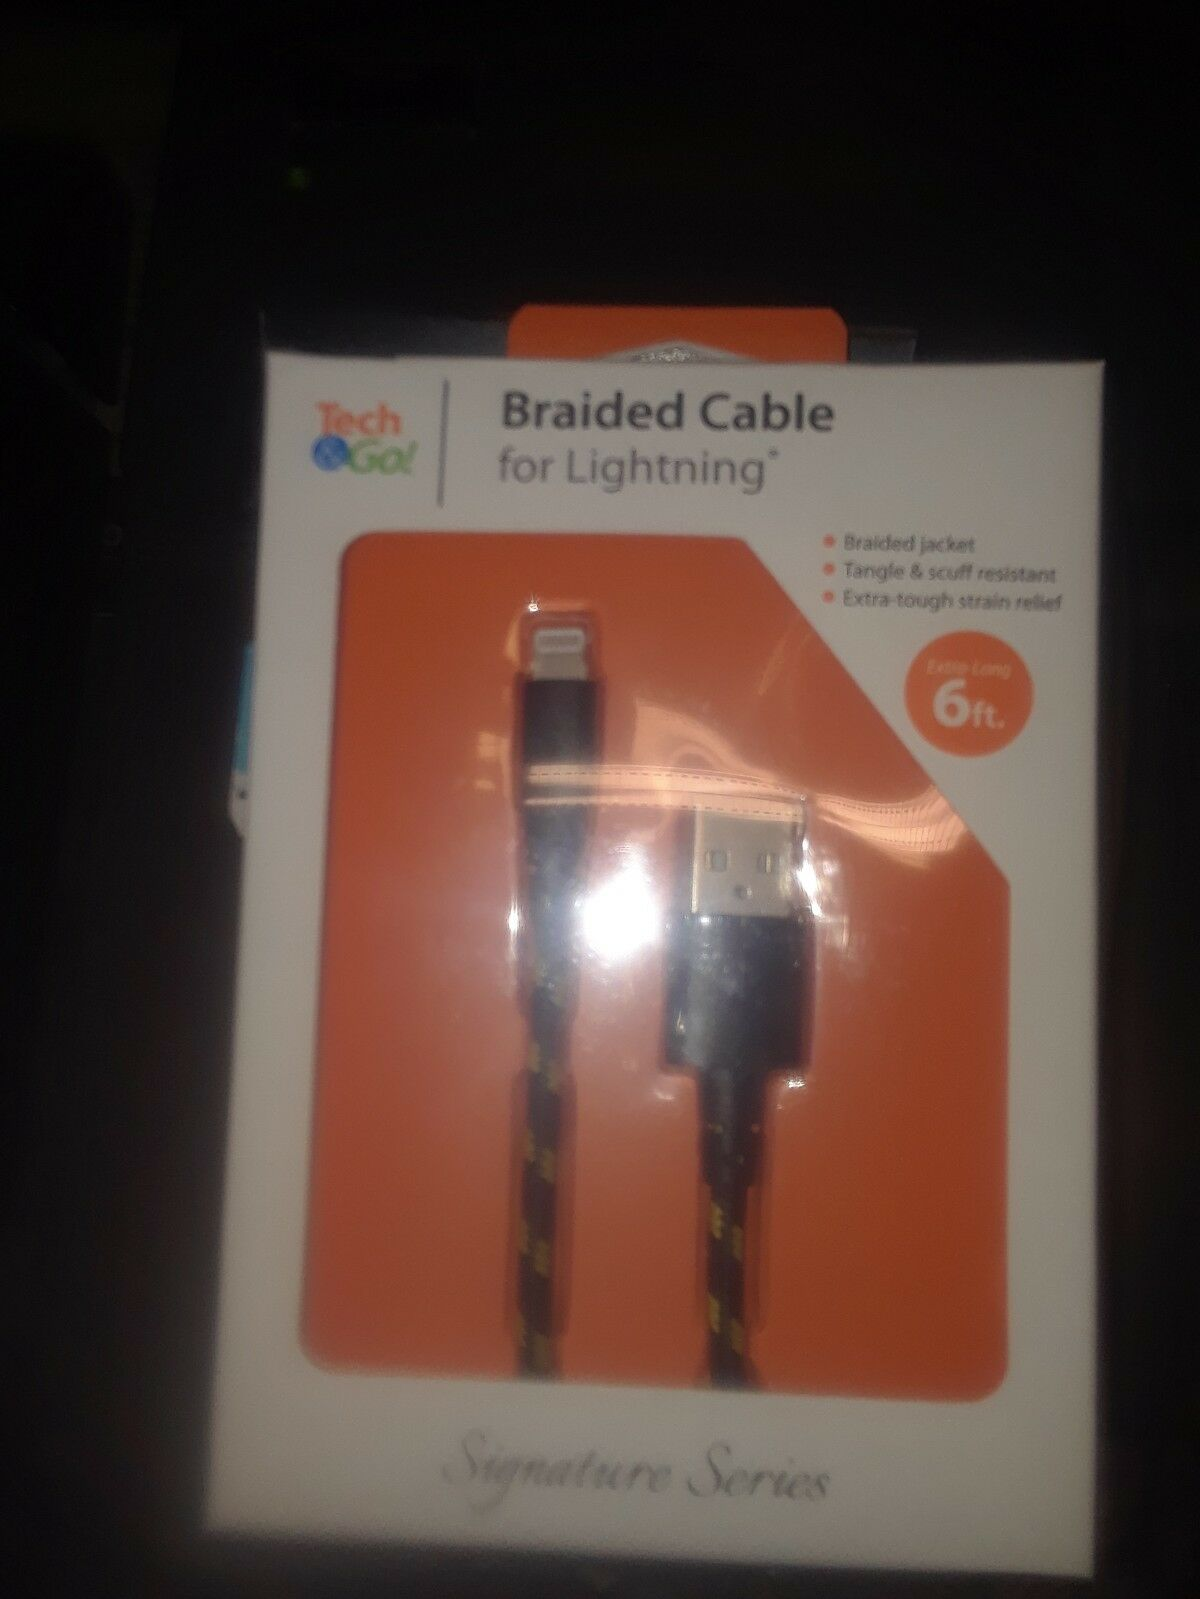 Lightning Cable 6ft Braided - $10.00